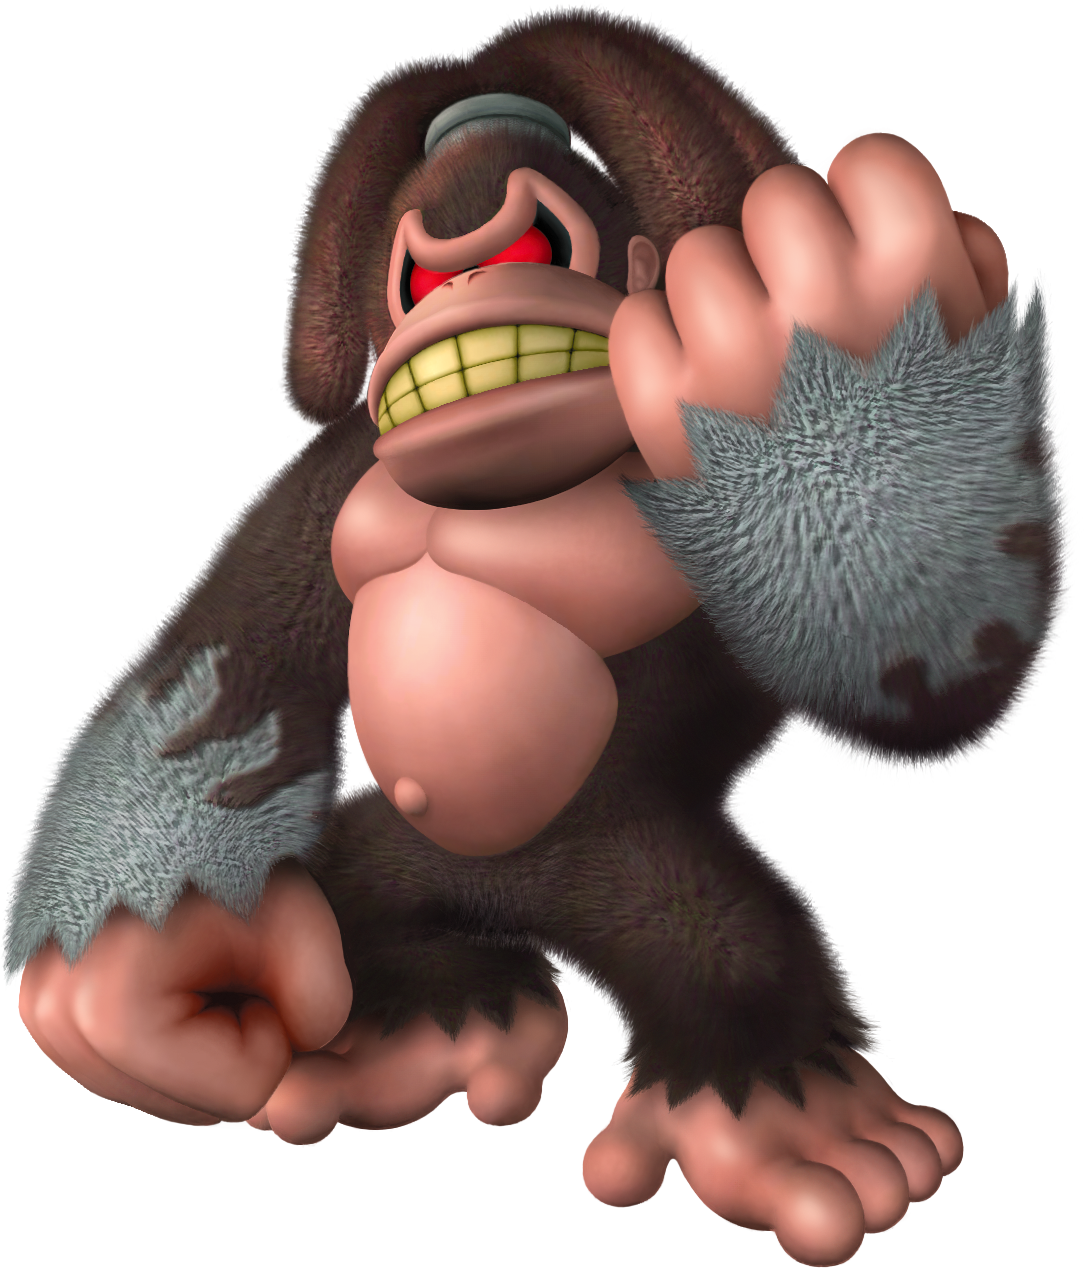 svg transparent stock Image dread kong png. Ape clipart jungle gorilla